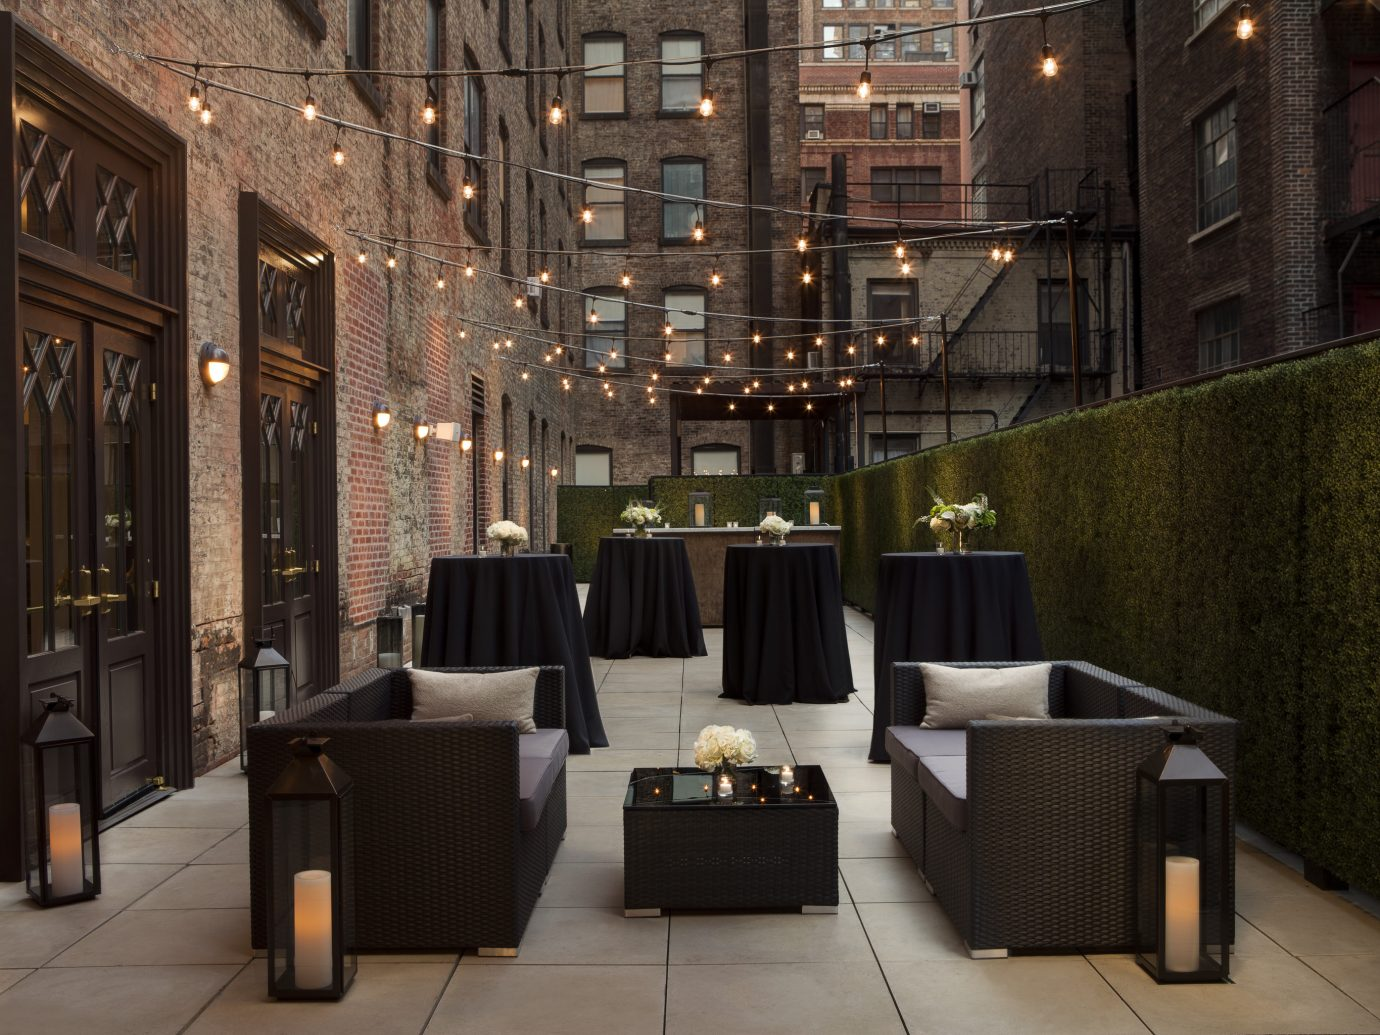 Outdoor patio at The Redbury, New York City